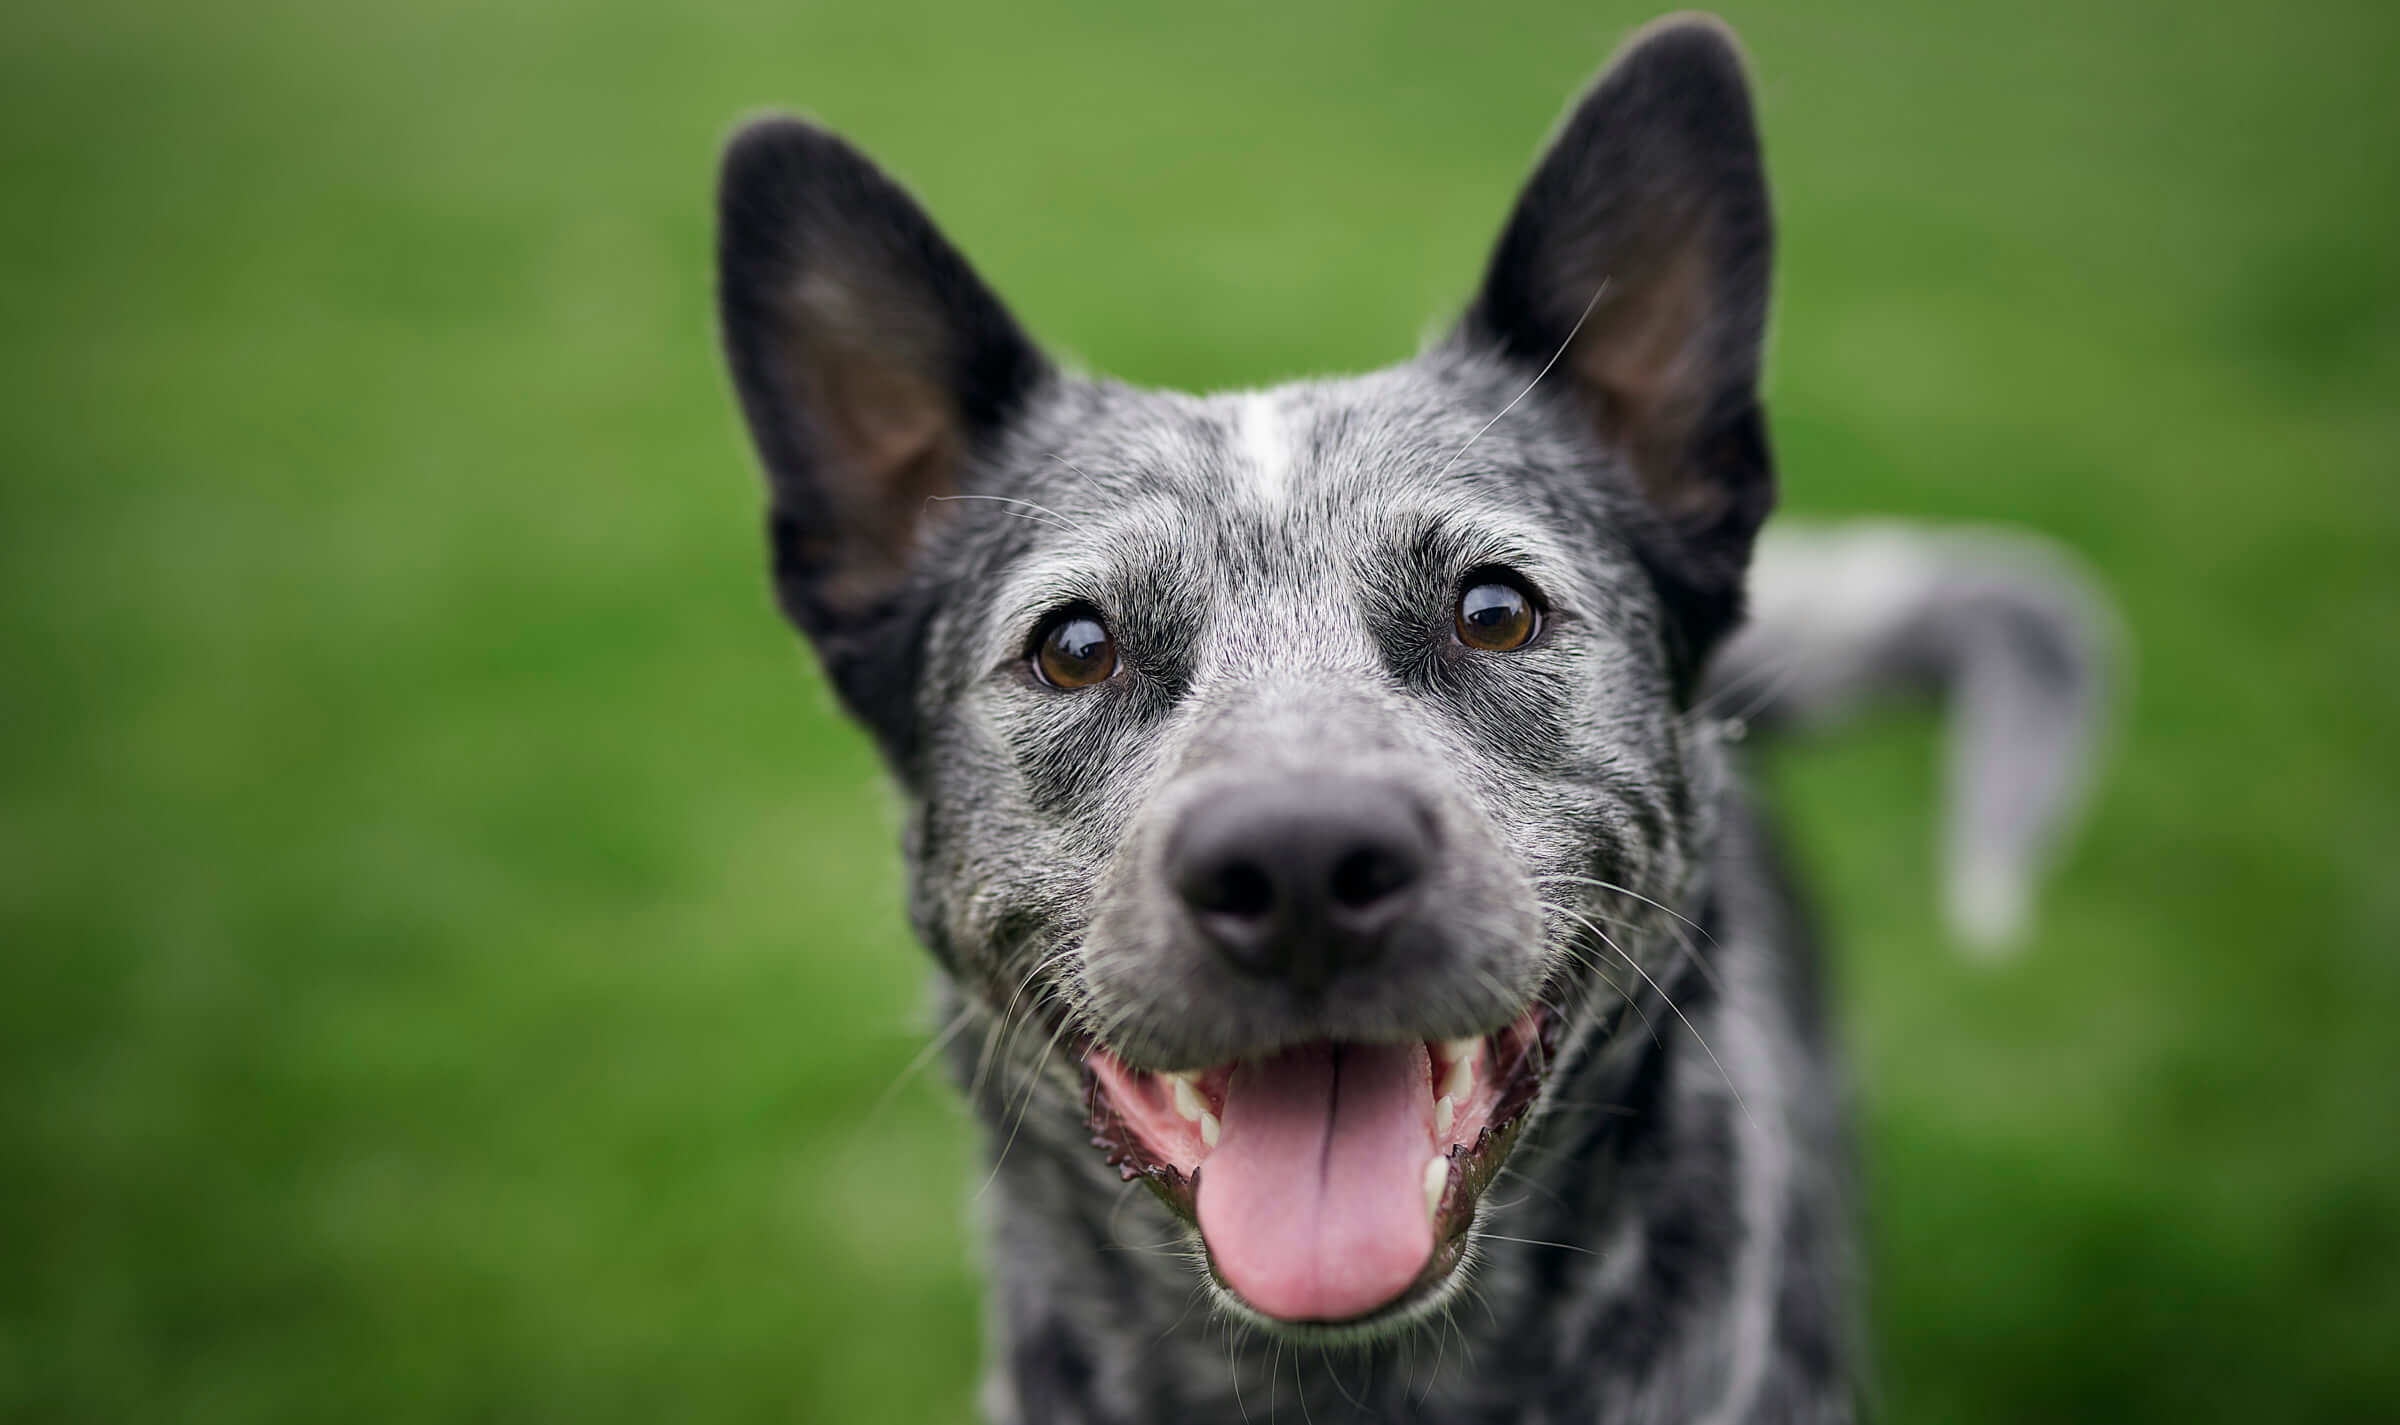 Blue Heeler Instagram Dog @SmokeyDingo